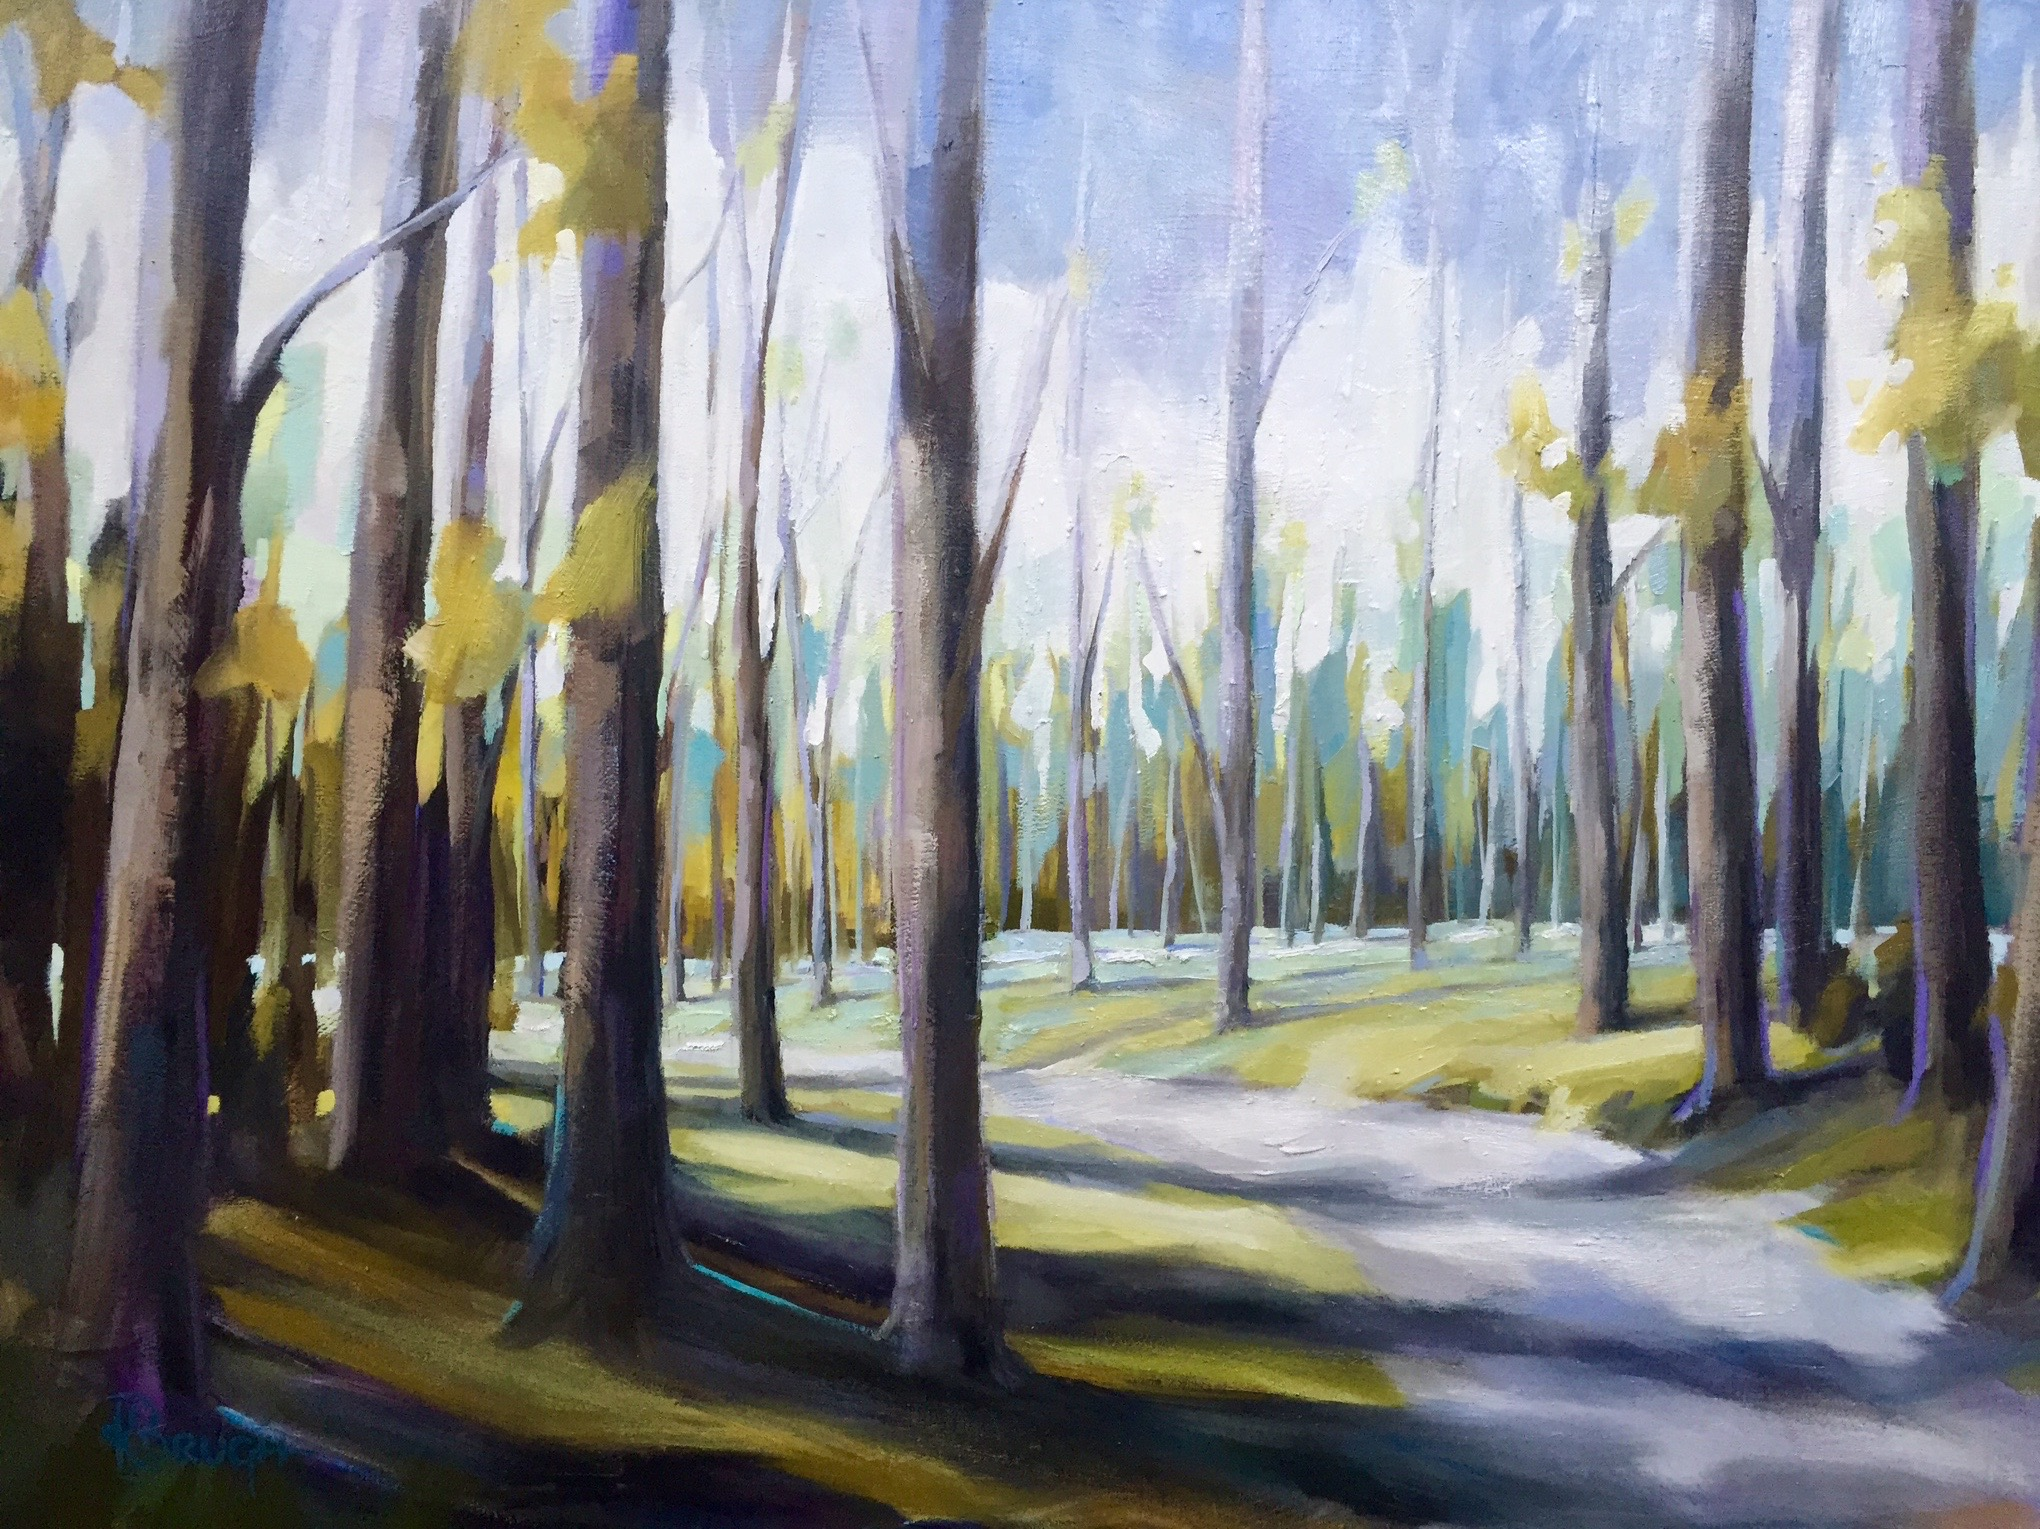 Wilderness Trail by Kelley Brugh 36x48, Oil on canvas  SOLD